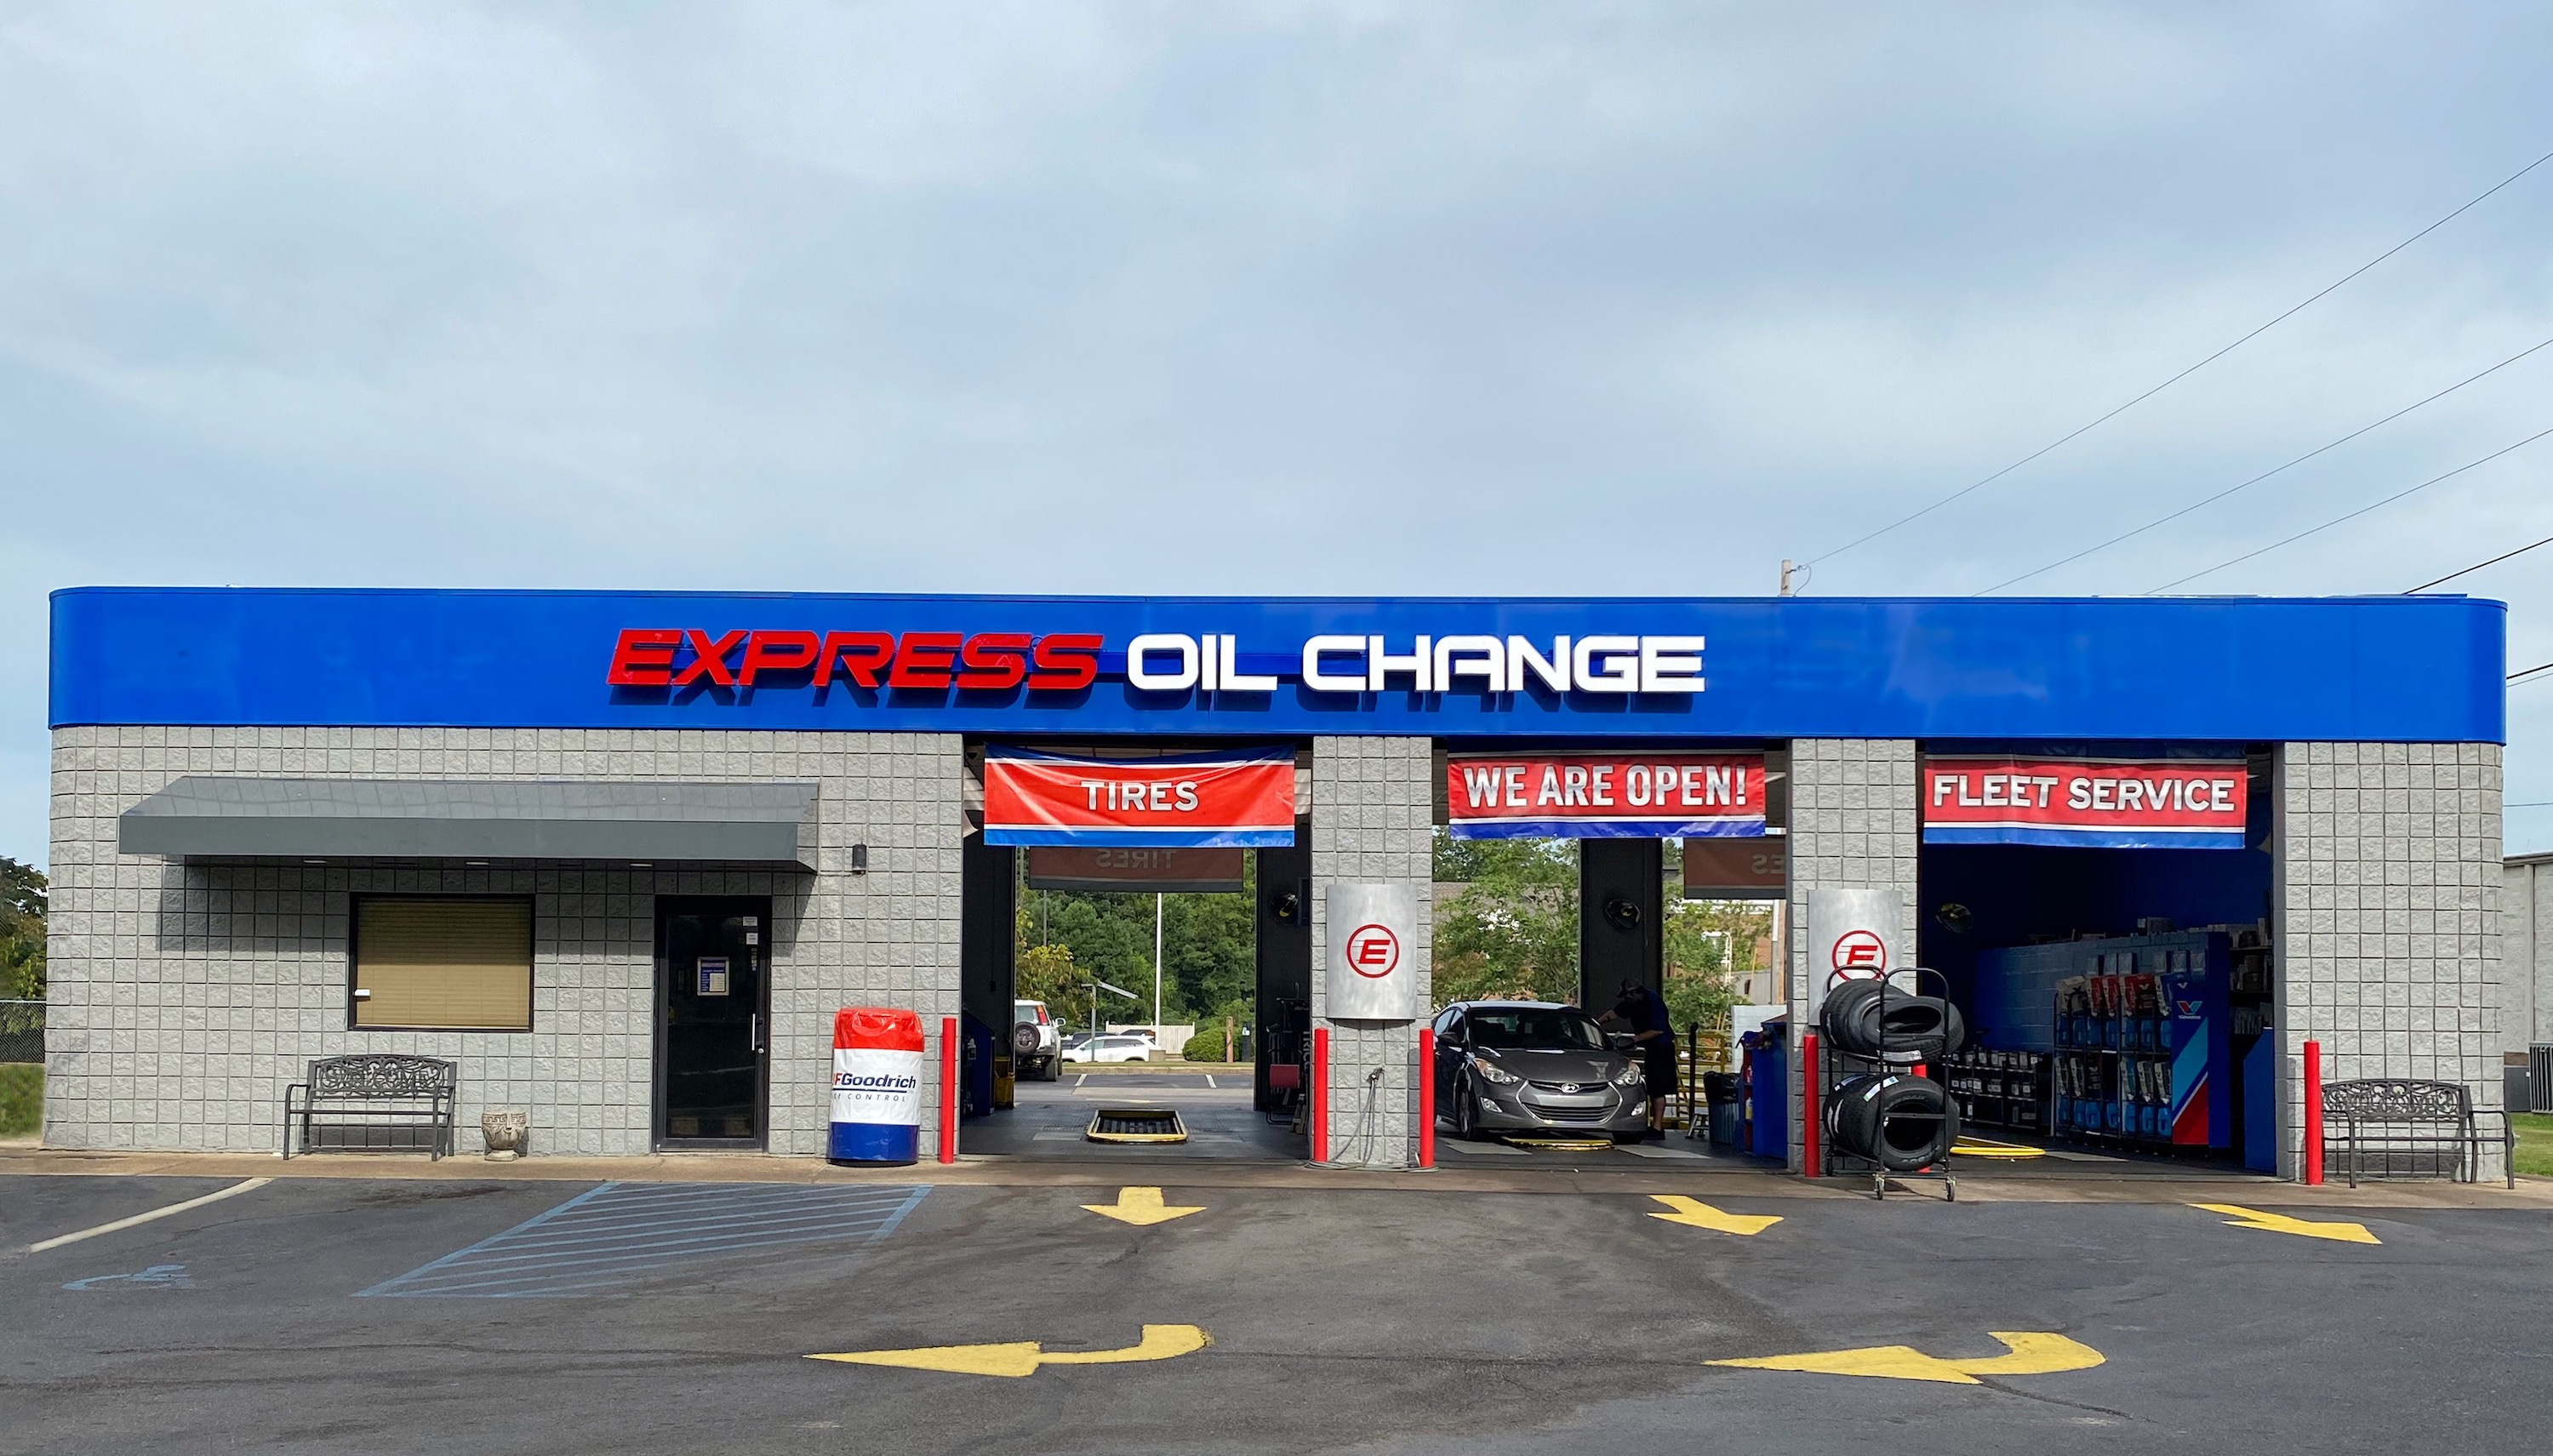 Express Oil Change & Tire Engineers Jasper, AL - Jasper Square store